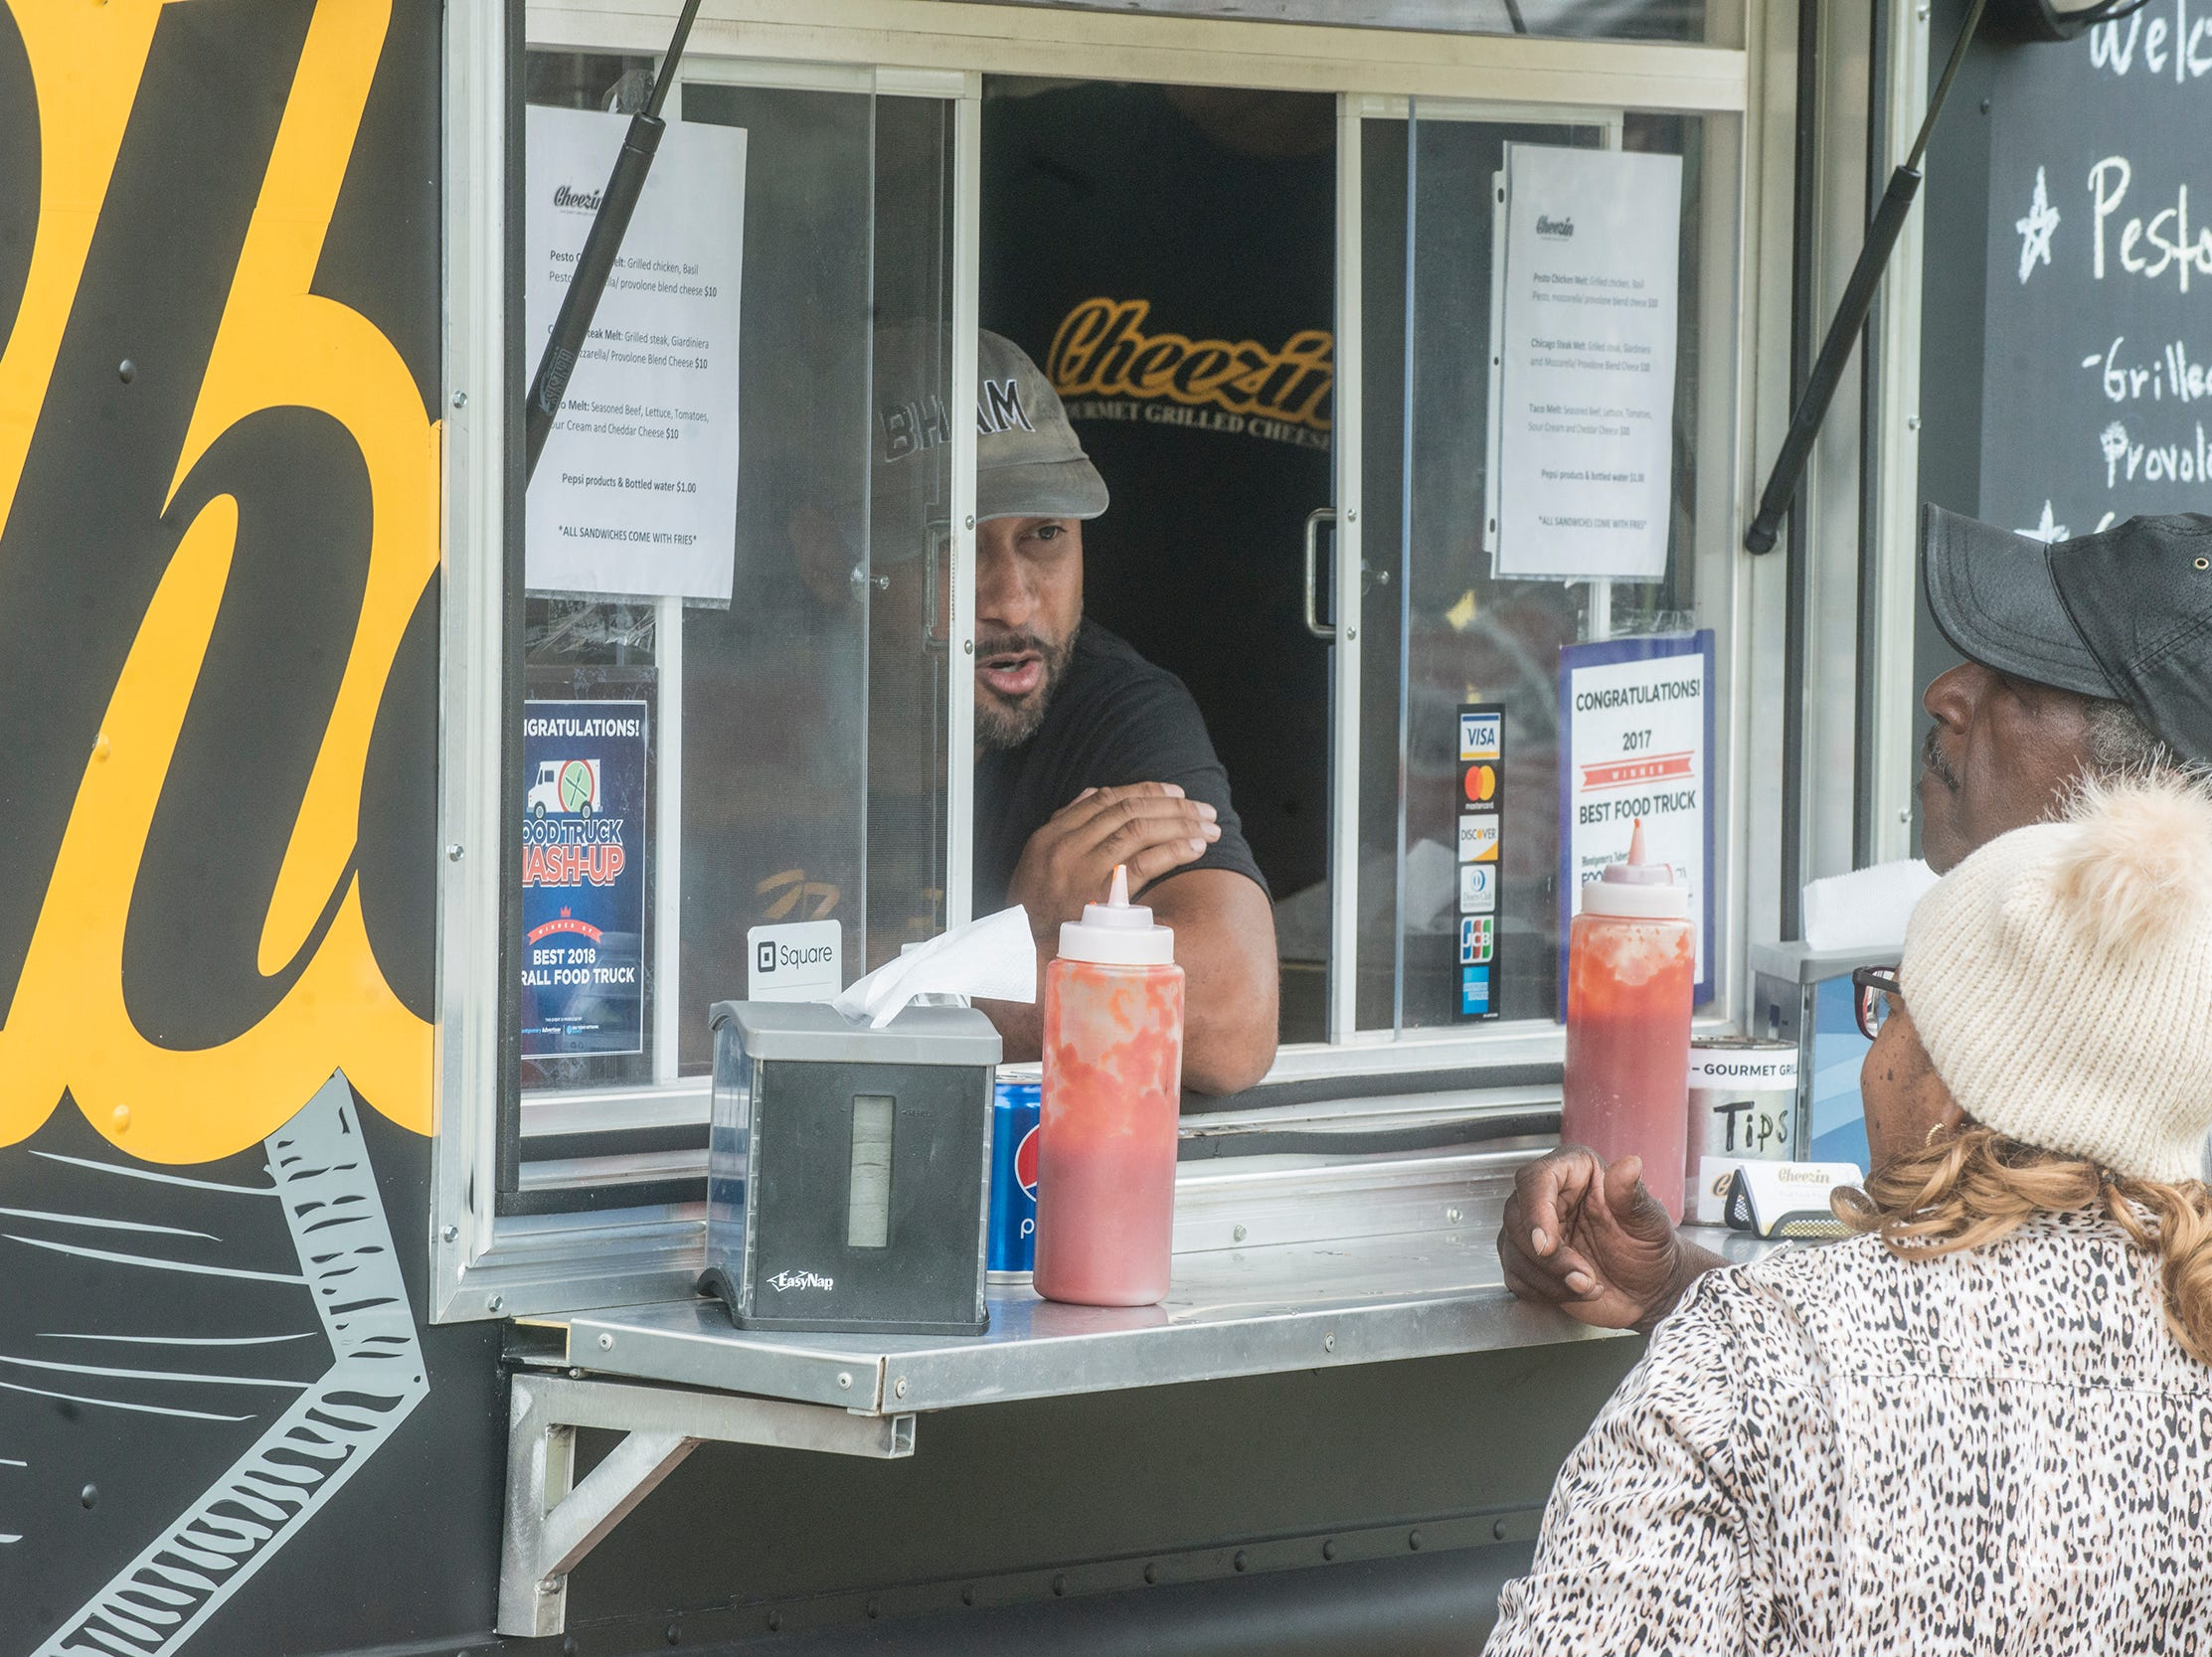 Guests visit Cheezin, the two-time champion of Food Truck Mash-Up. FTMU returned to Riverwalk Stadium on Saturday, Oct. 20, 2018, bringing a variety of food trucks, music and games for guests to enjoy.